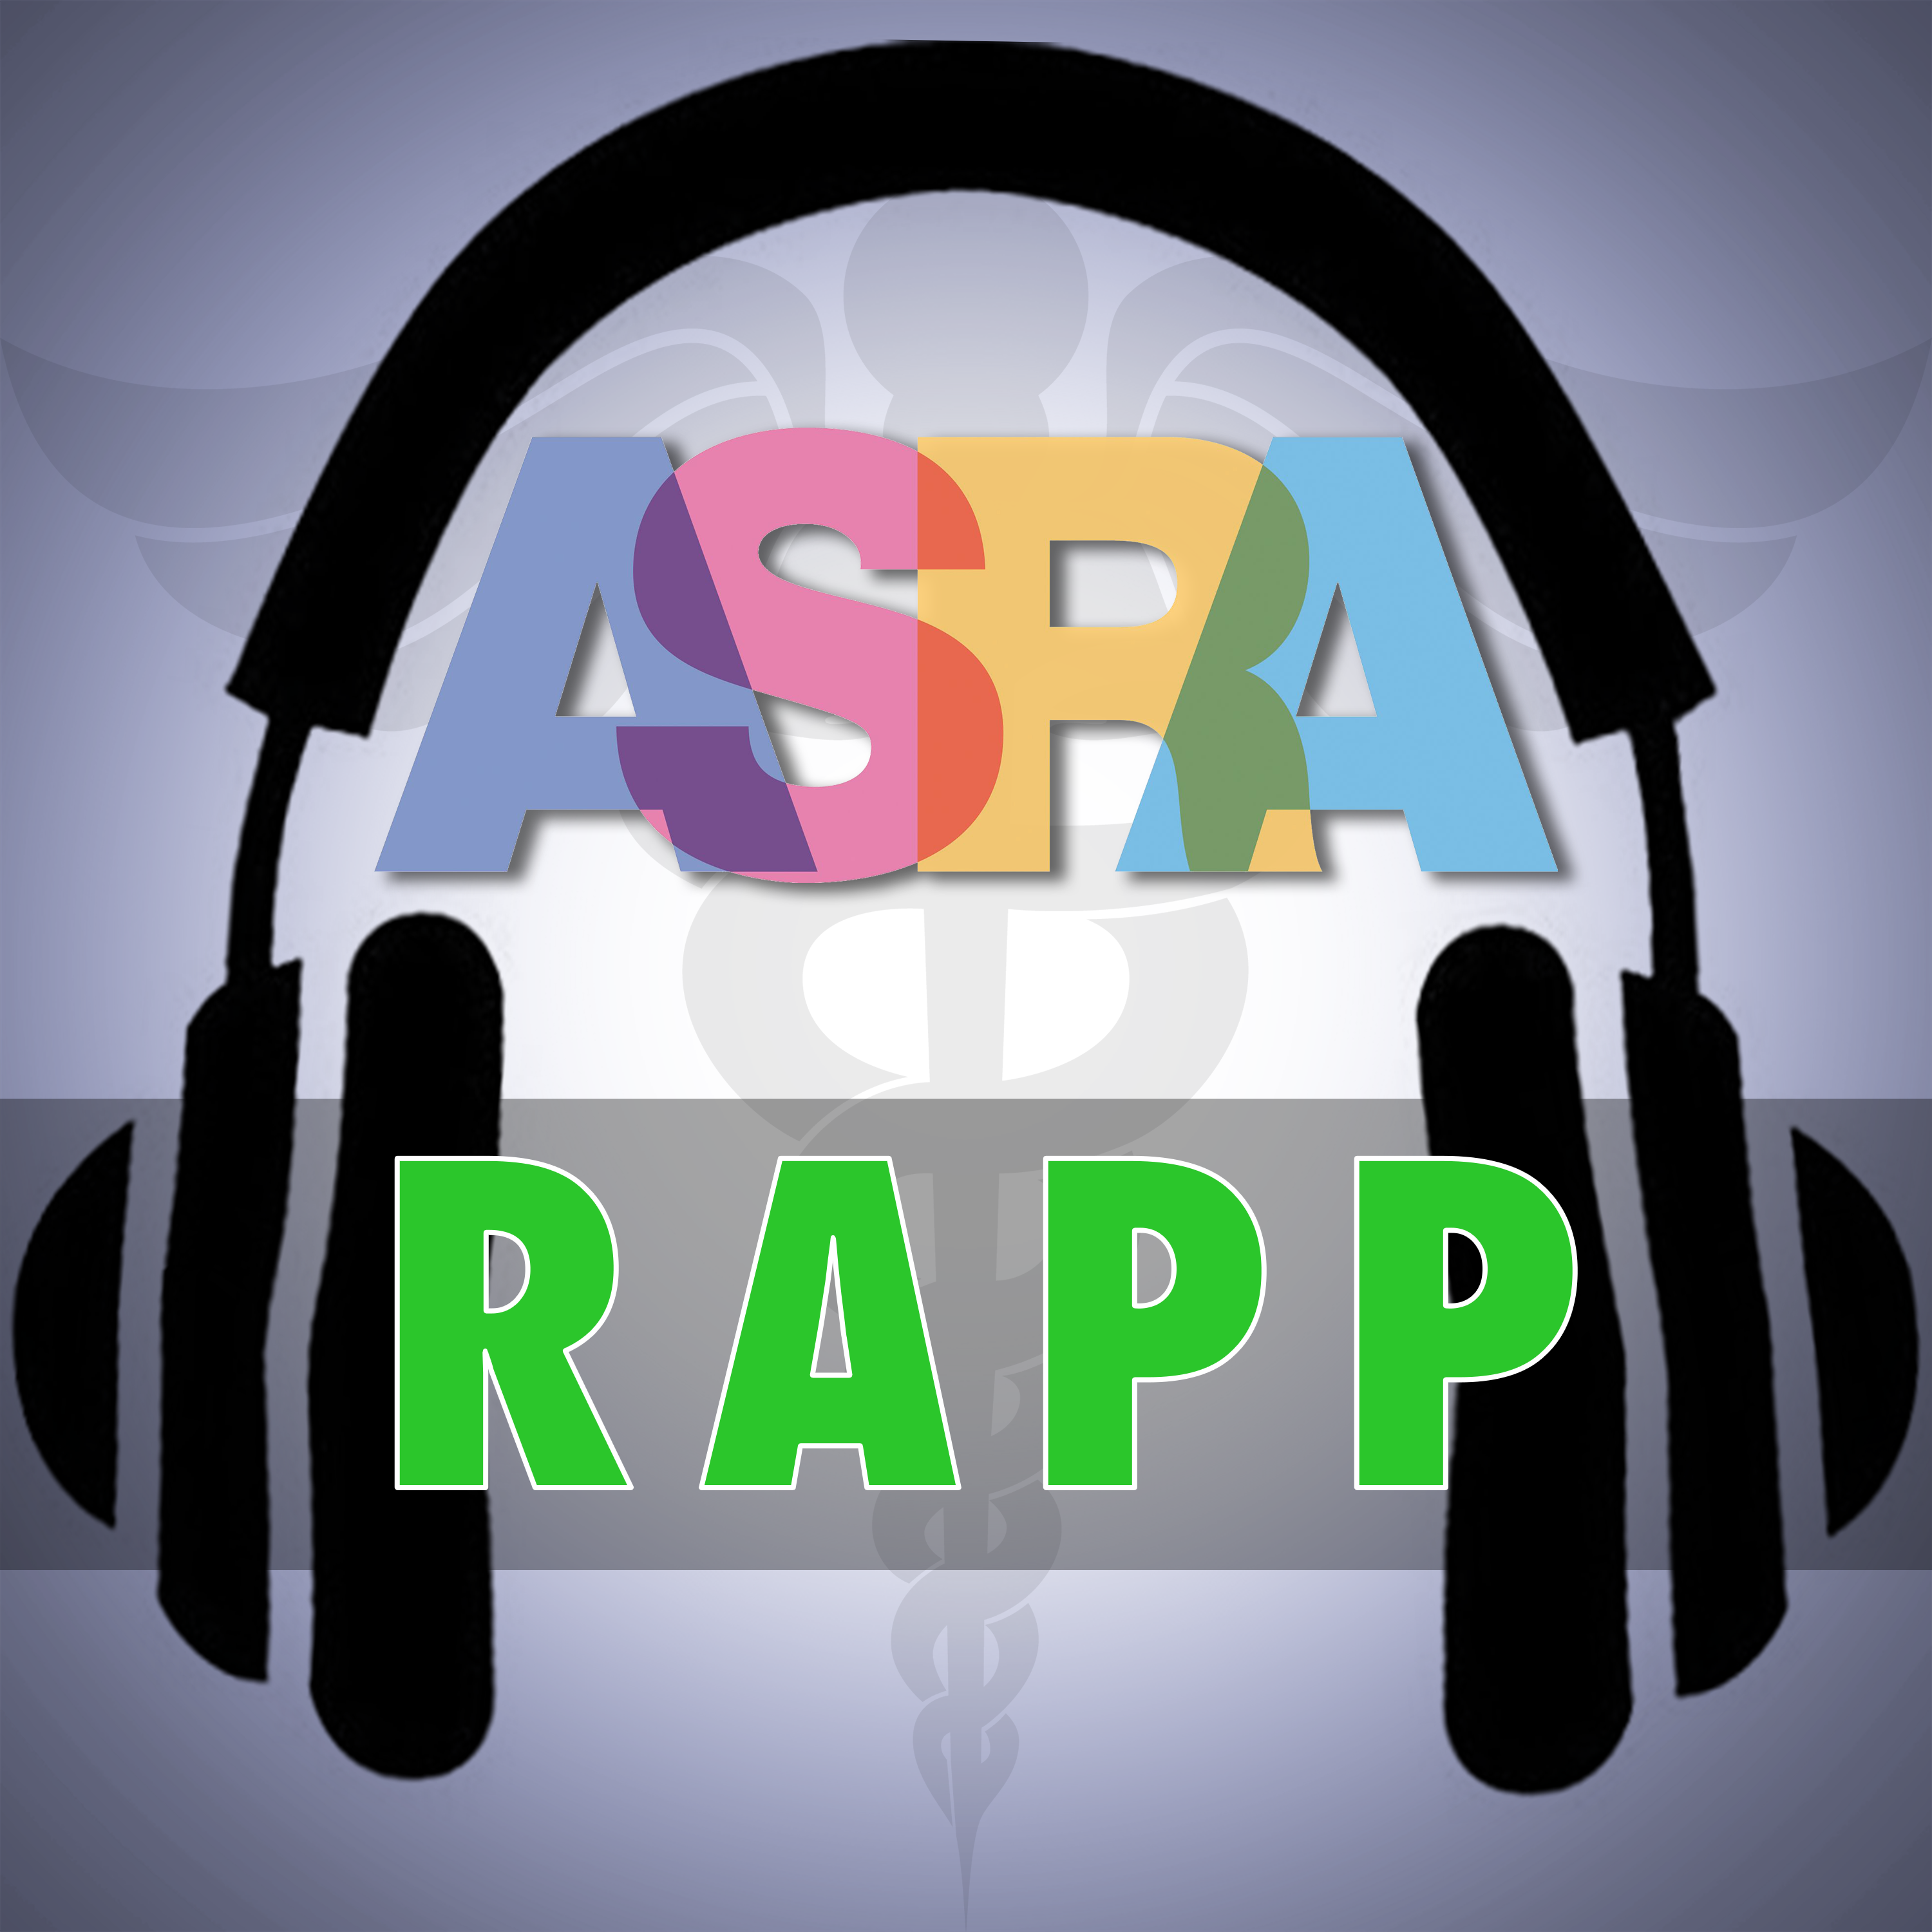 Regional Anesthesia and Pain Podcast